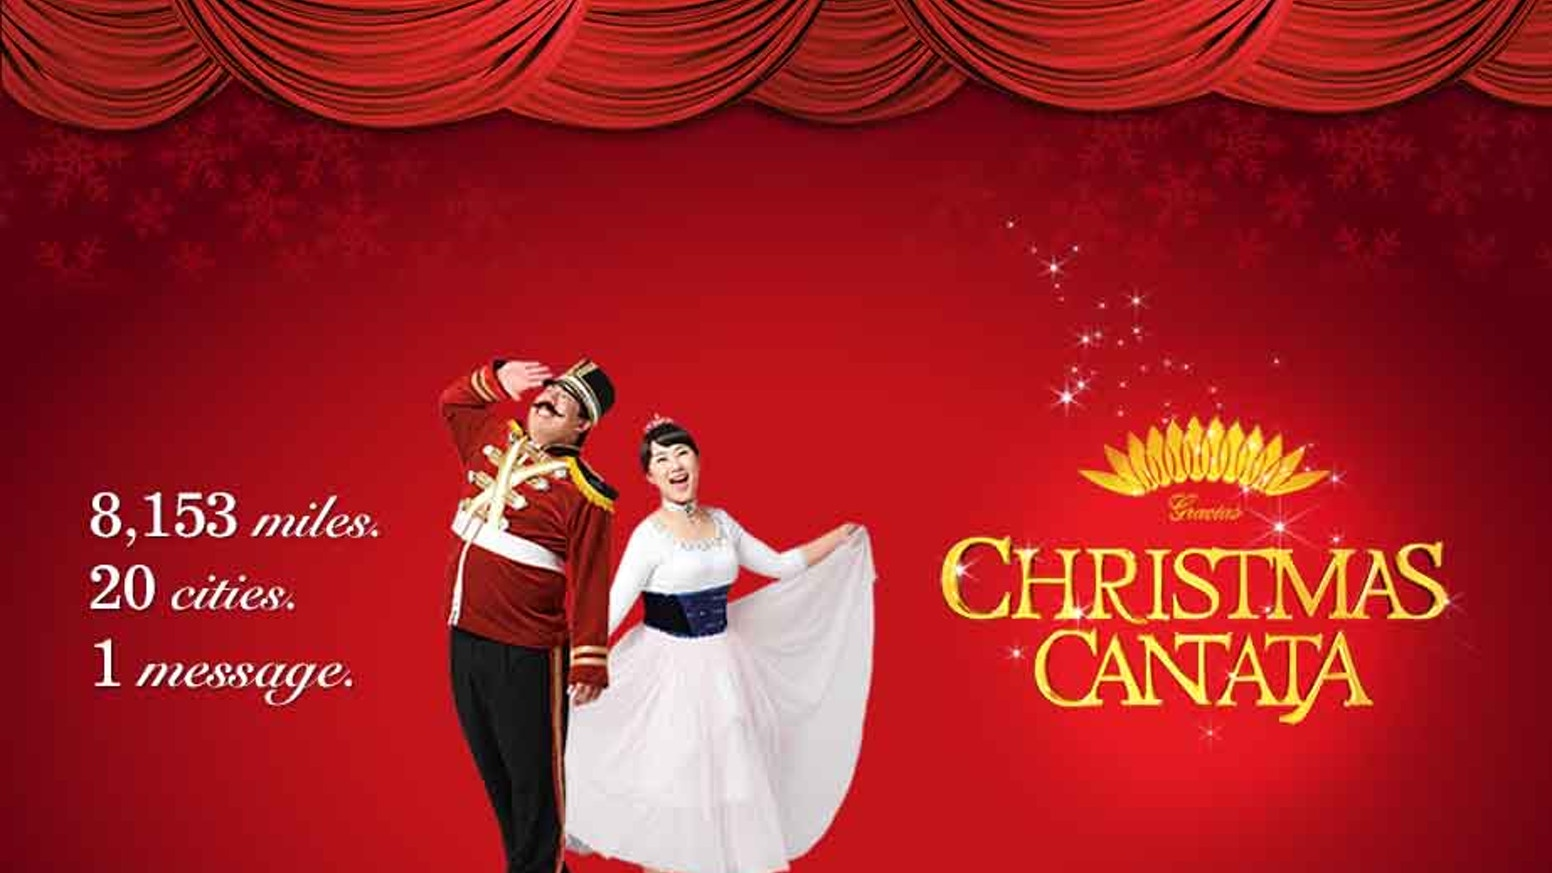 Christmas Cantata 2019 New Orleans.Bring Gracias Christmas Cantata Tour Back To The Us In 2015